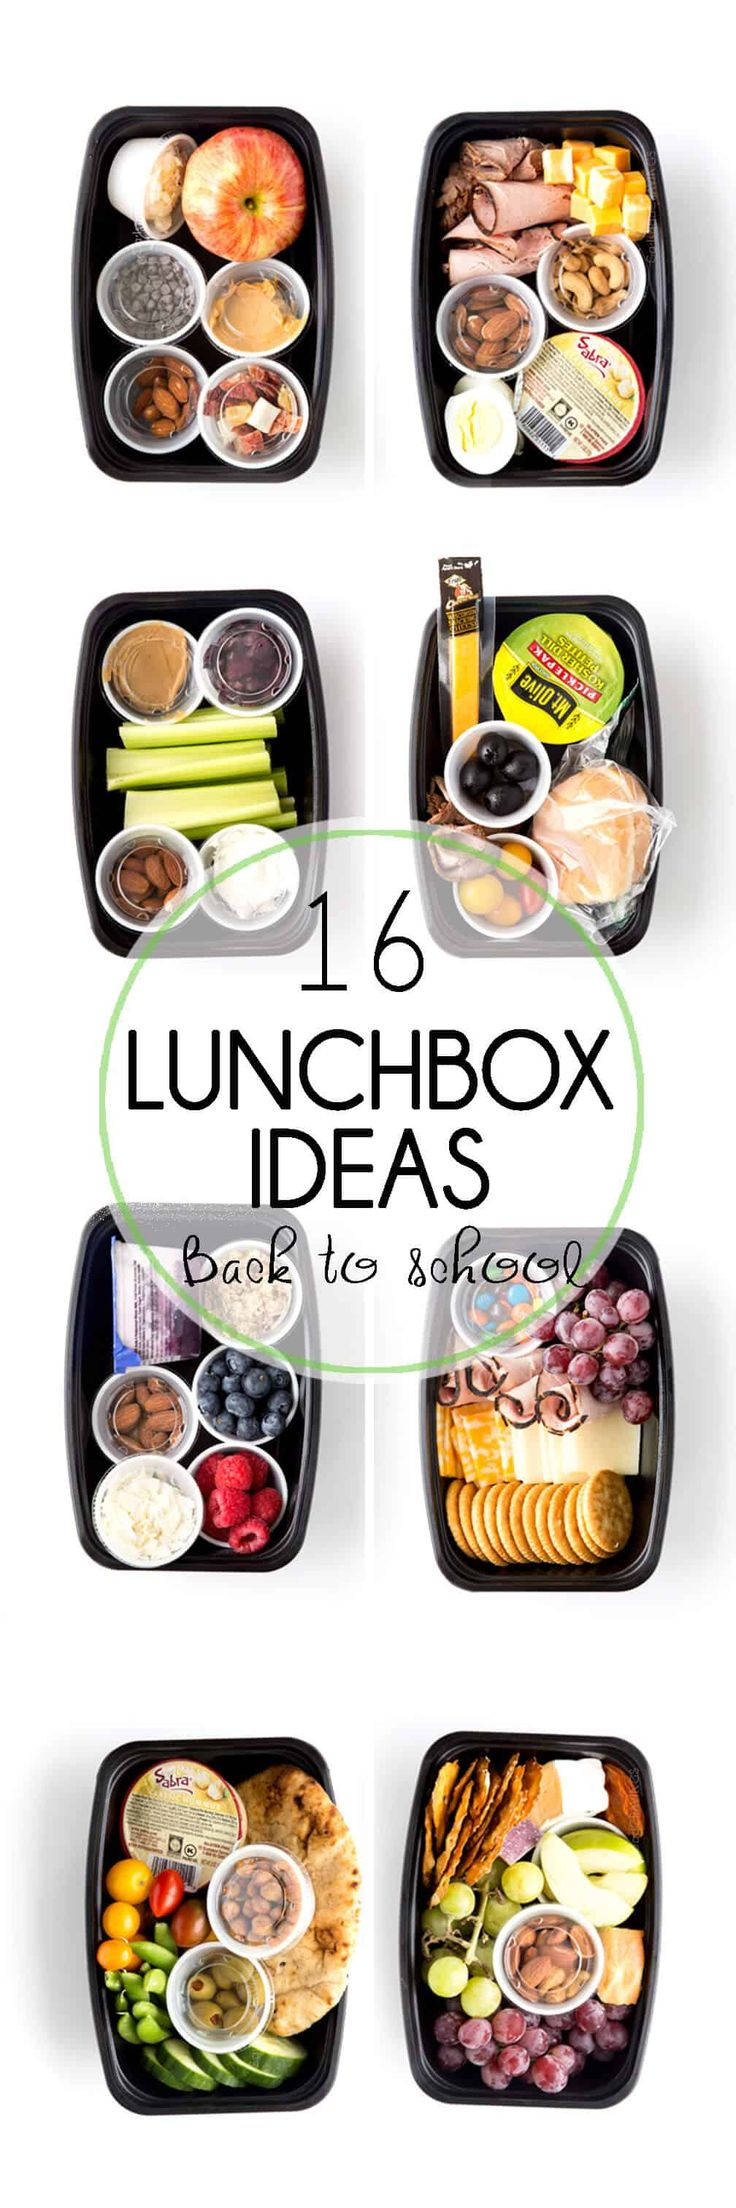 Lunchbox Ideas: 16 eazy peazy Lunchbox ideas you will love that aren't sandwiches, and that adults and kids will love! Perfect lunches for going back to school. via @Rachael Yerkes